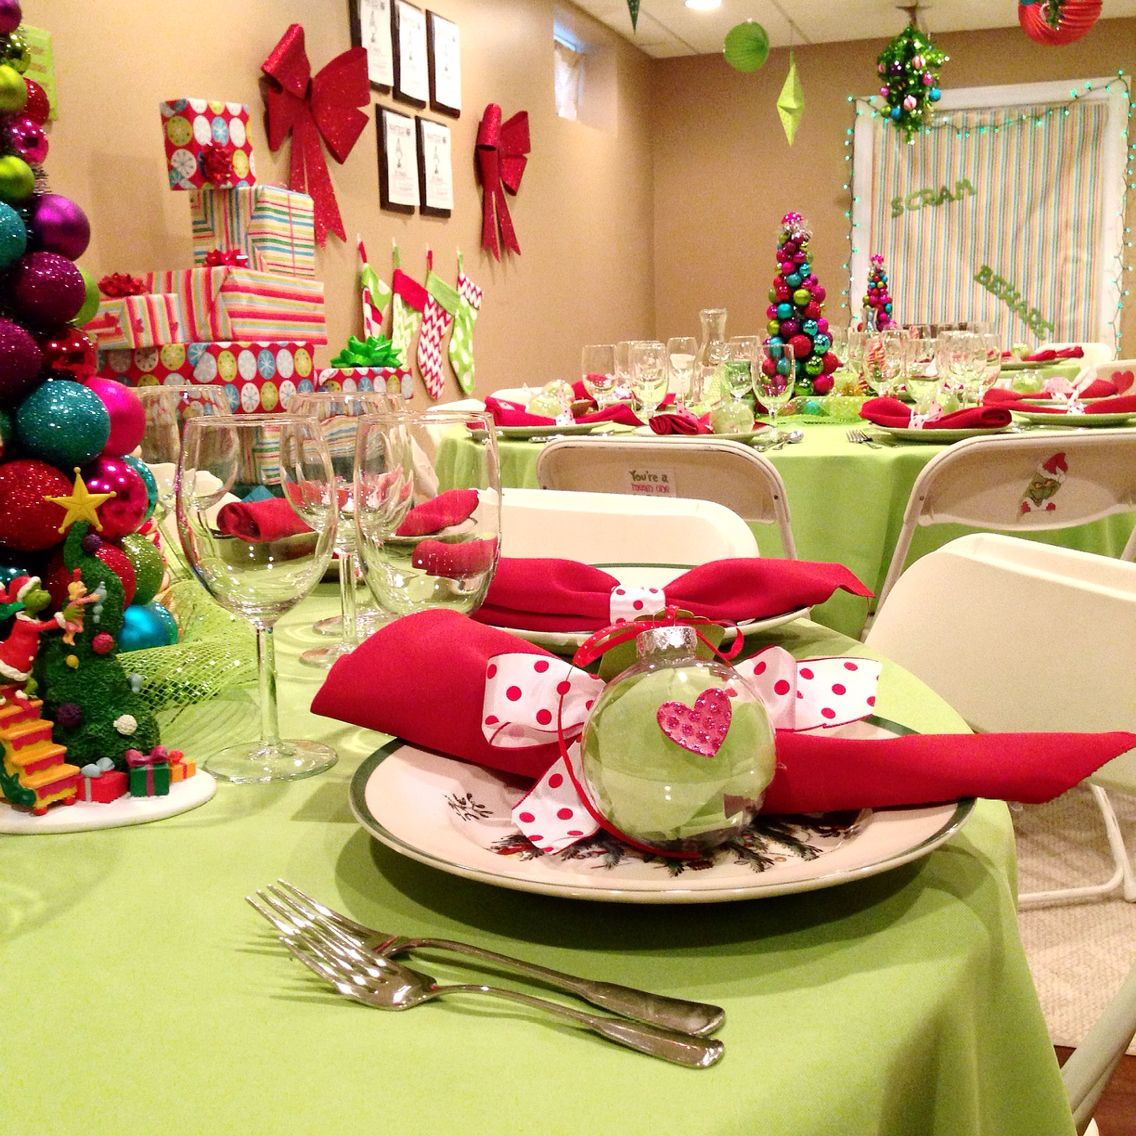 Grinch Christmas Decorations Party Supplies